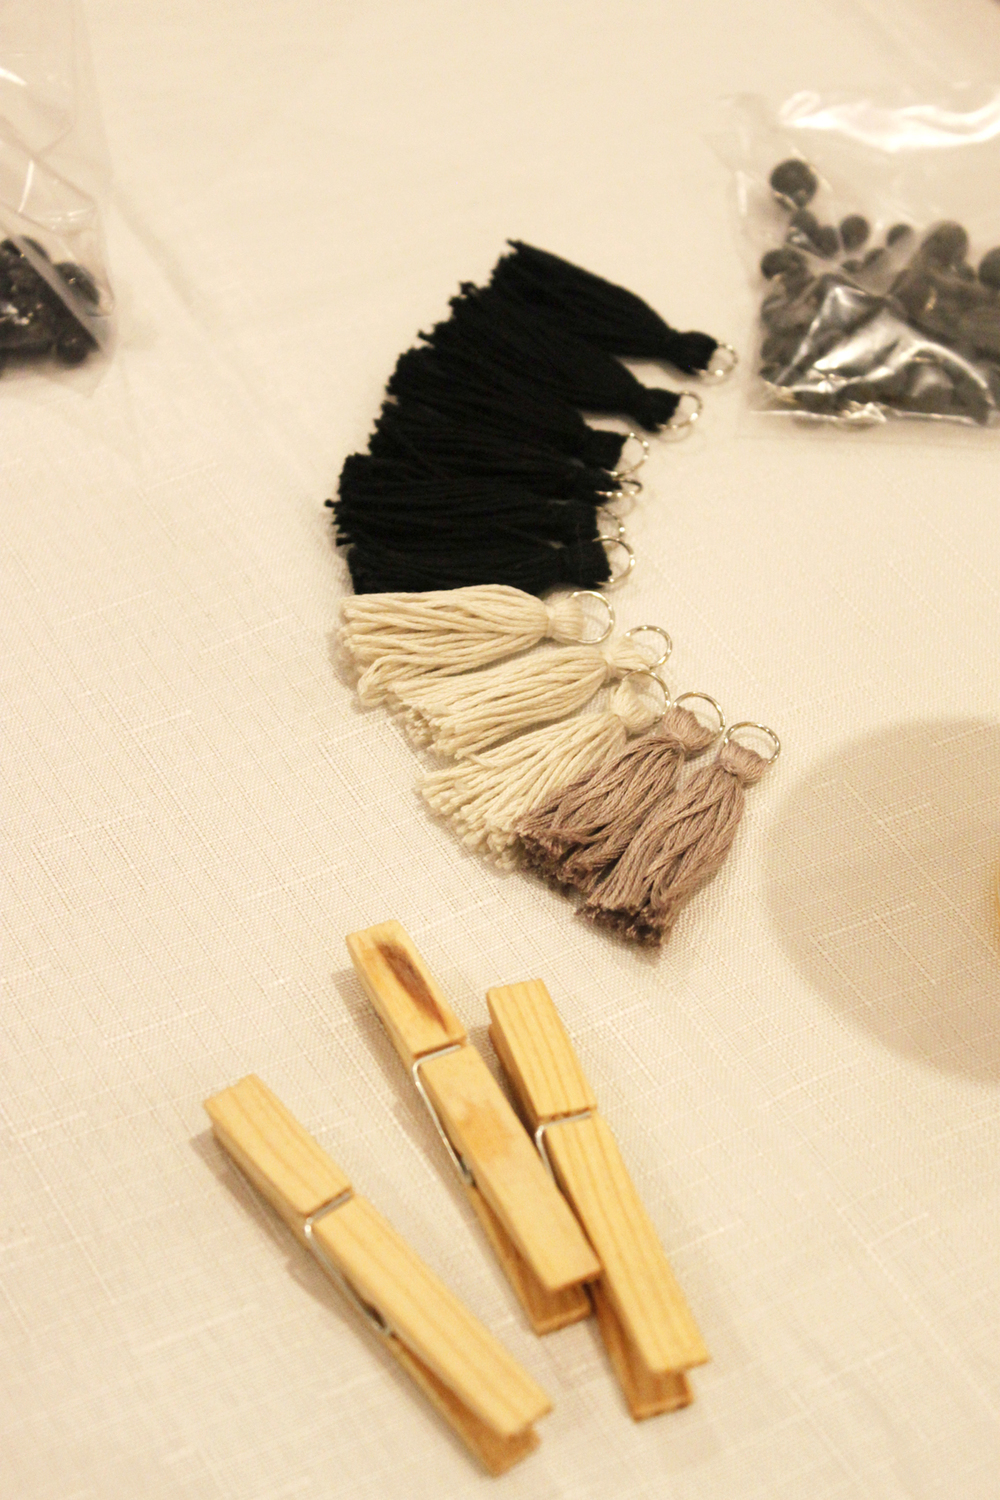 Tassel Necklace workshop, The Corner Store Gallery, Orange NSW, photograph by Madeline Young